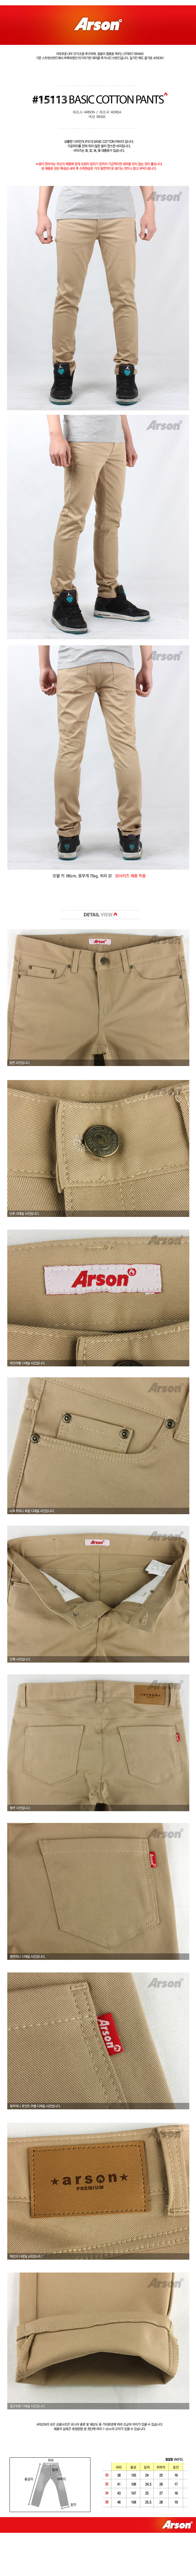 [ ARSON ] [Arson] ARSON GENUINE/15113 BASIC COTTON PANTS (BEIGE)/men\'s cotton pants/cotton pants/ARSON cotton pants